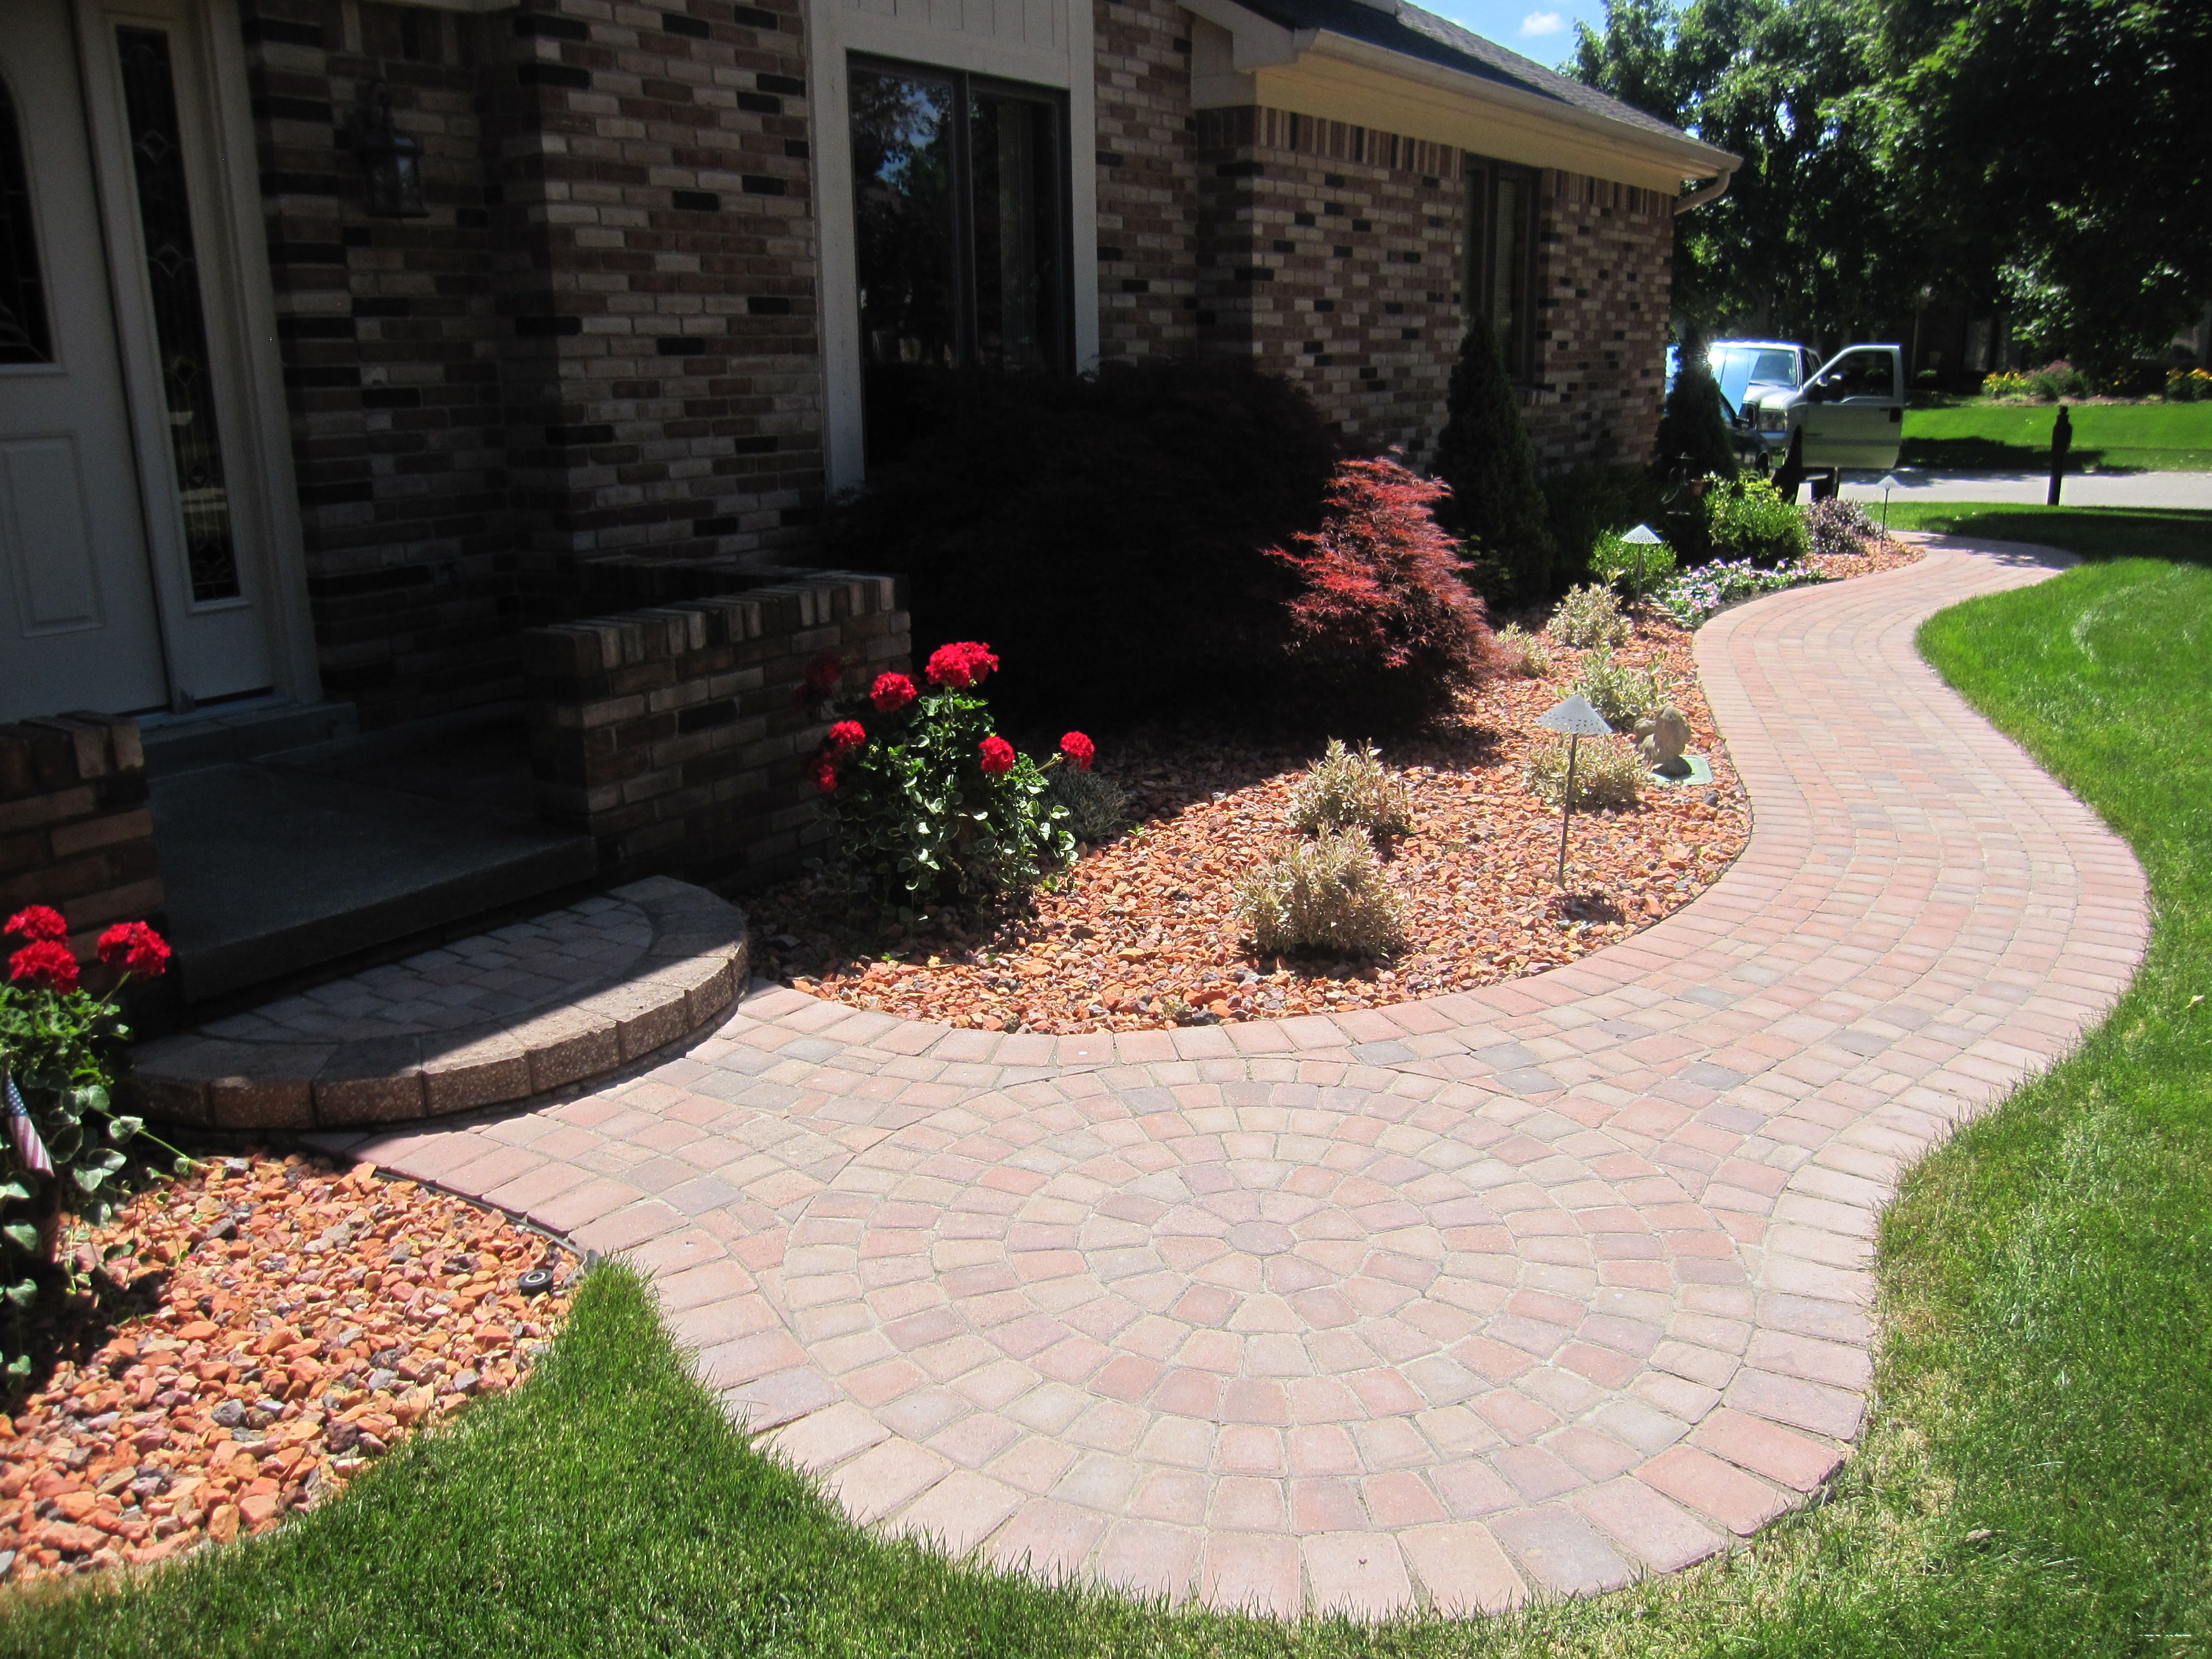 Enchanting Small Garden Landscape Ideas With Stepping Walk: Brick Paver Walkway With Circle Step And Small Patio